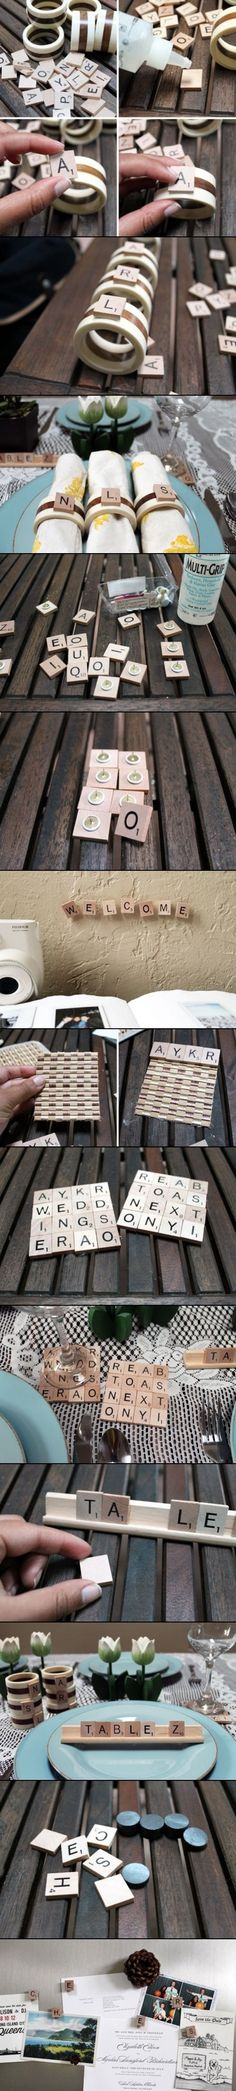 DIY Crafts Of Scrabble